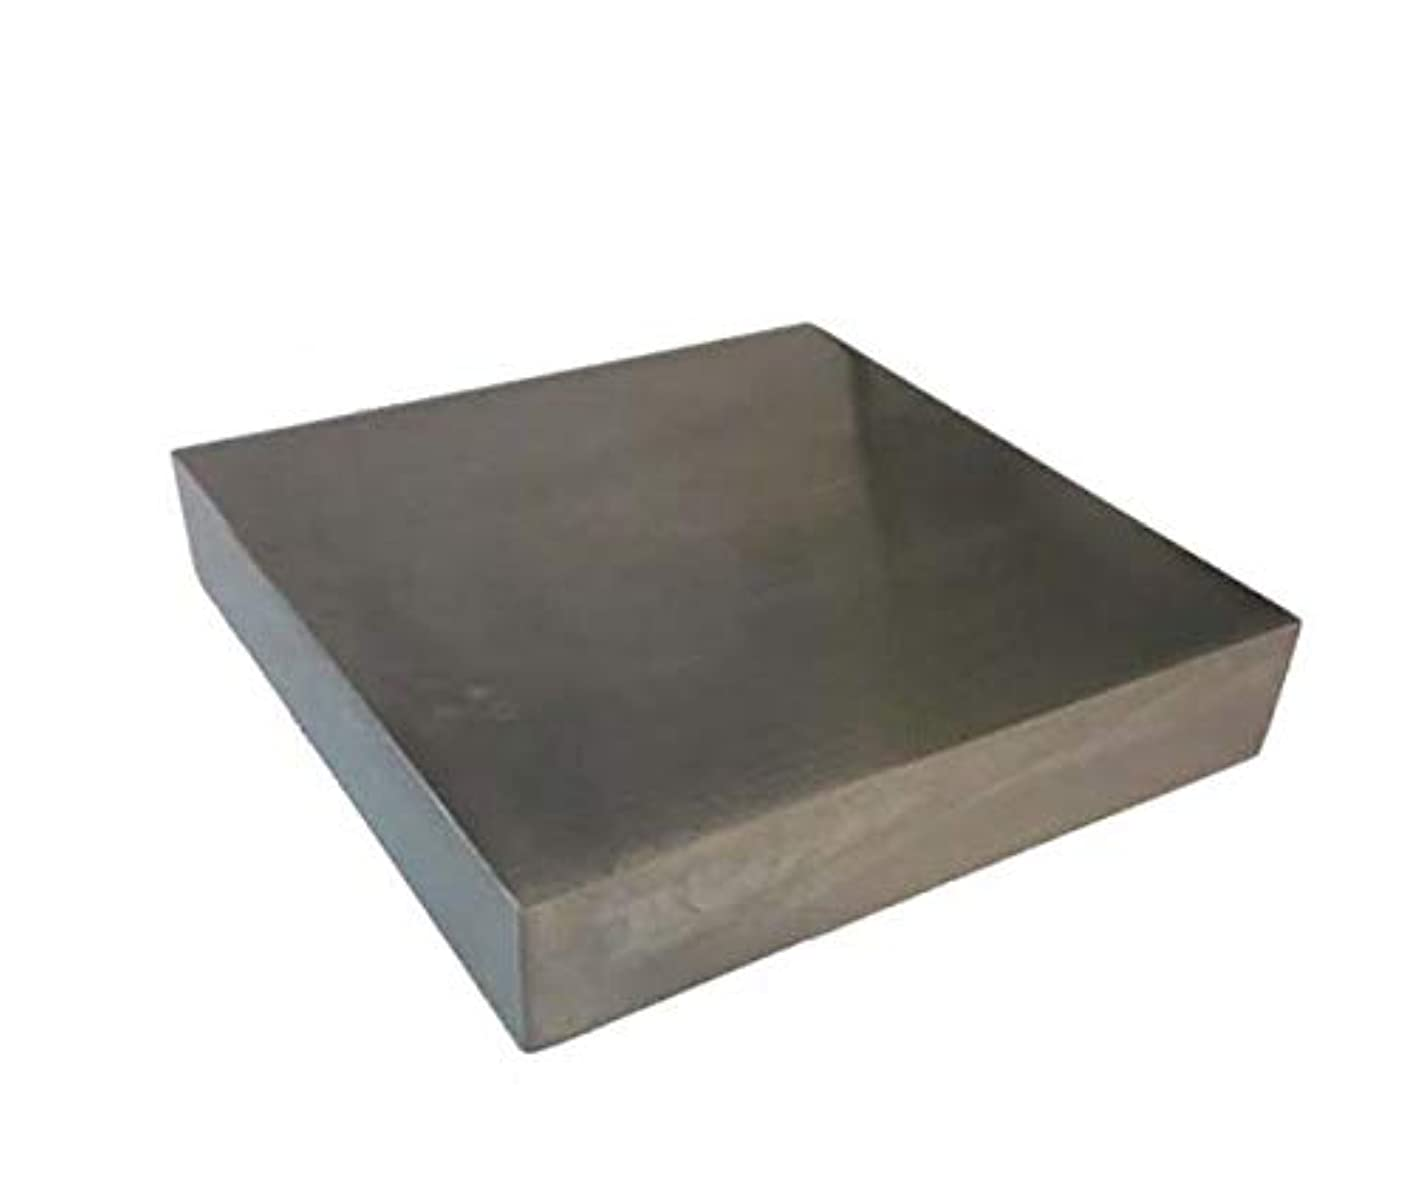 Solid Steel Metal Bench Block Wire Hardening and Wire Wrapping Tool